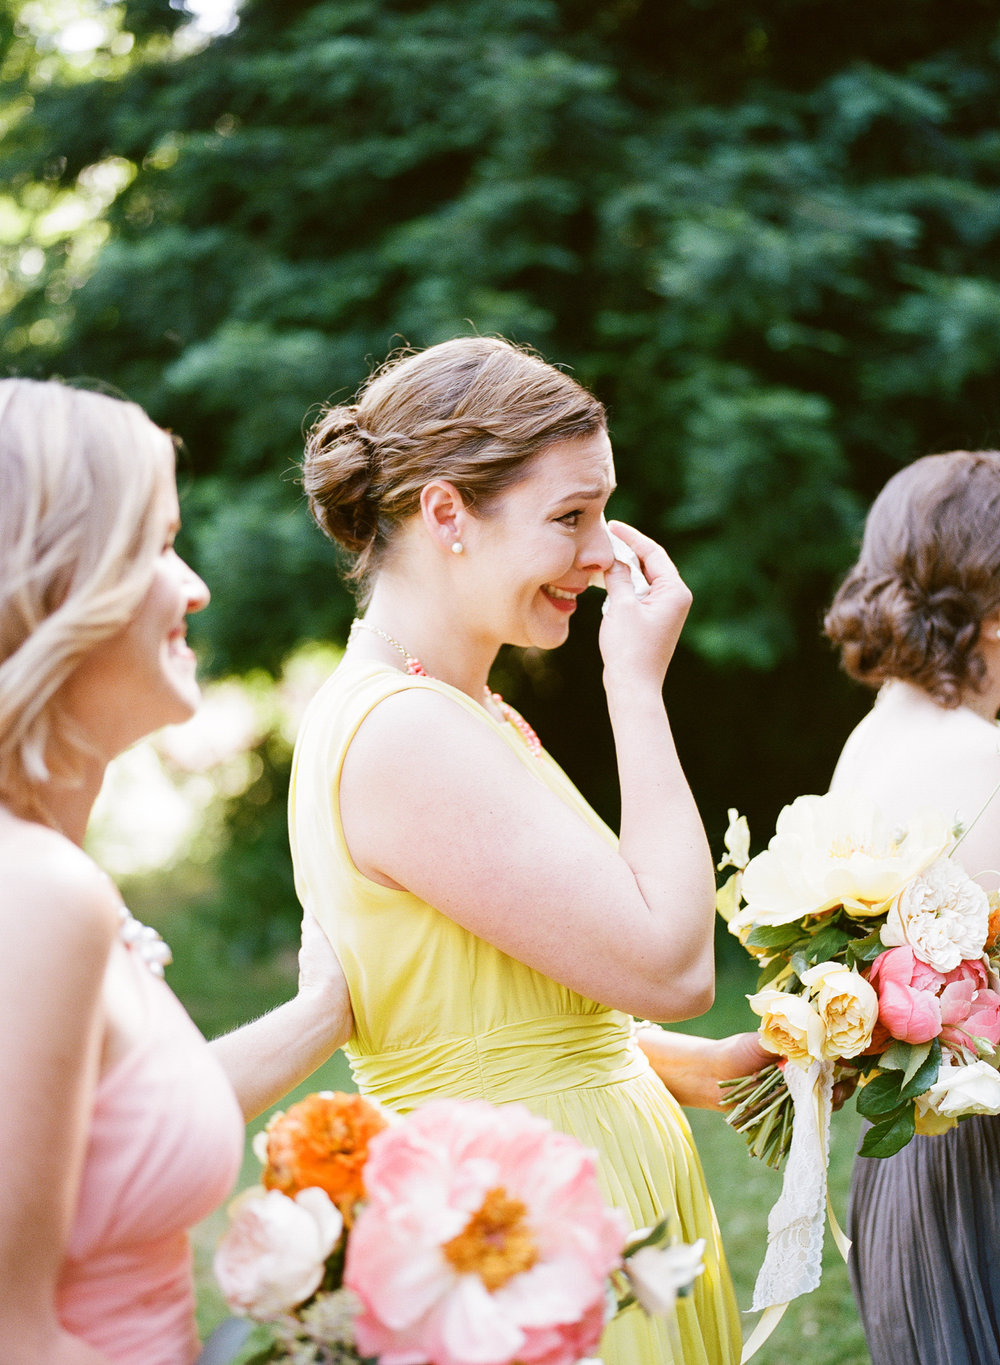 21-yellow-bridesmaid-dress.jpg